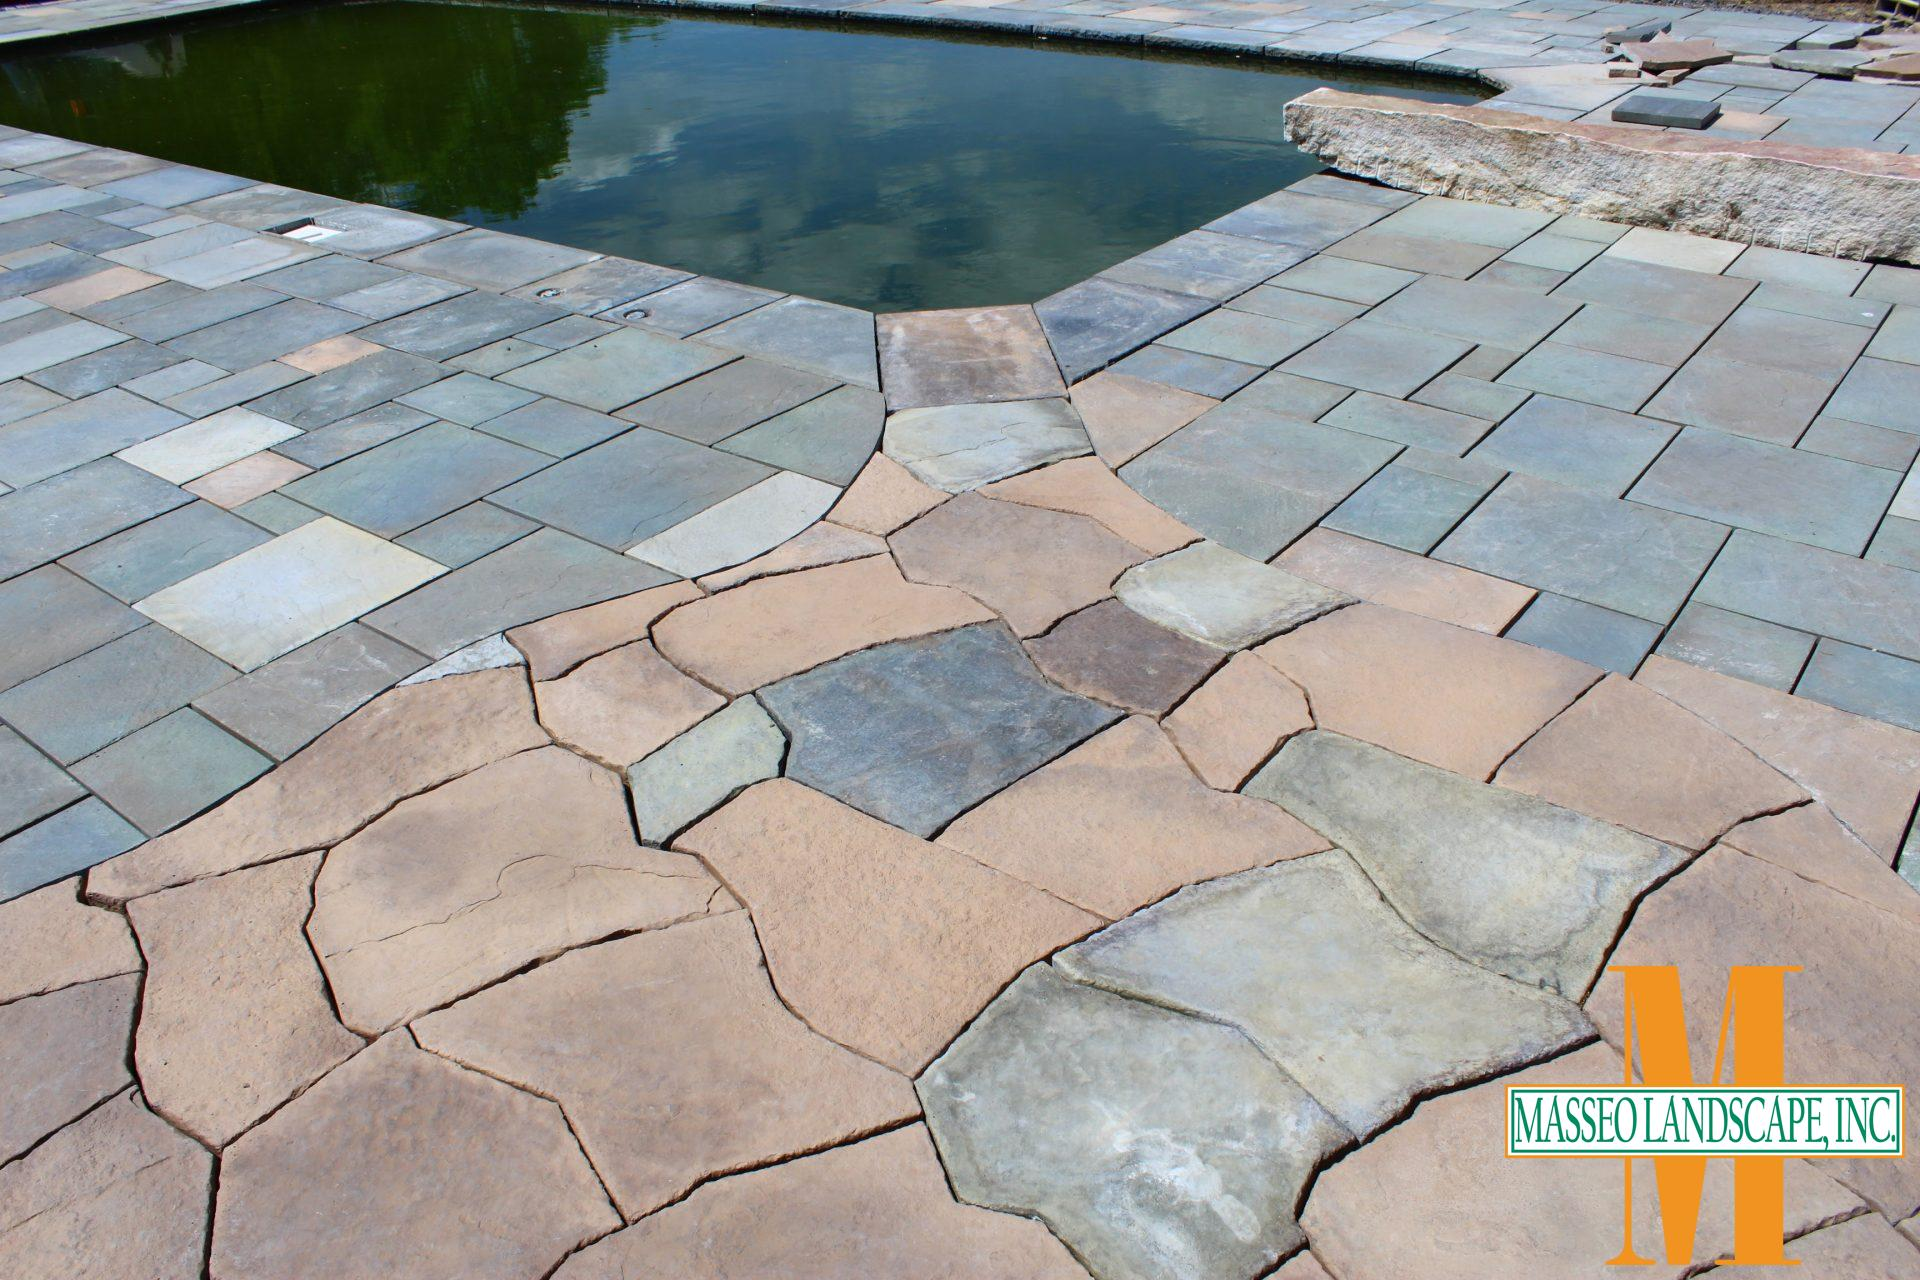 A pool patio featuring a mixture of geometric and naturalistic precast concrete pavers.